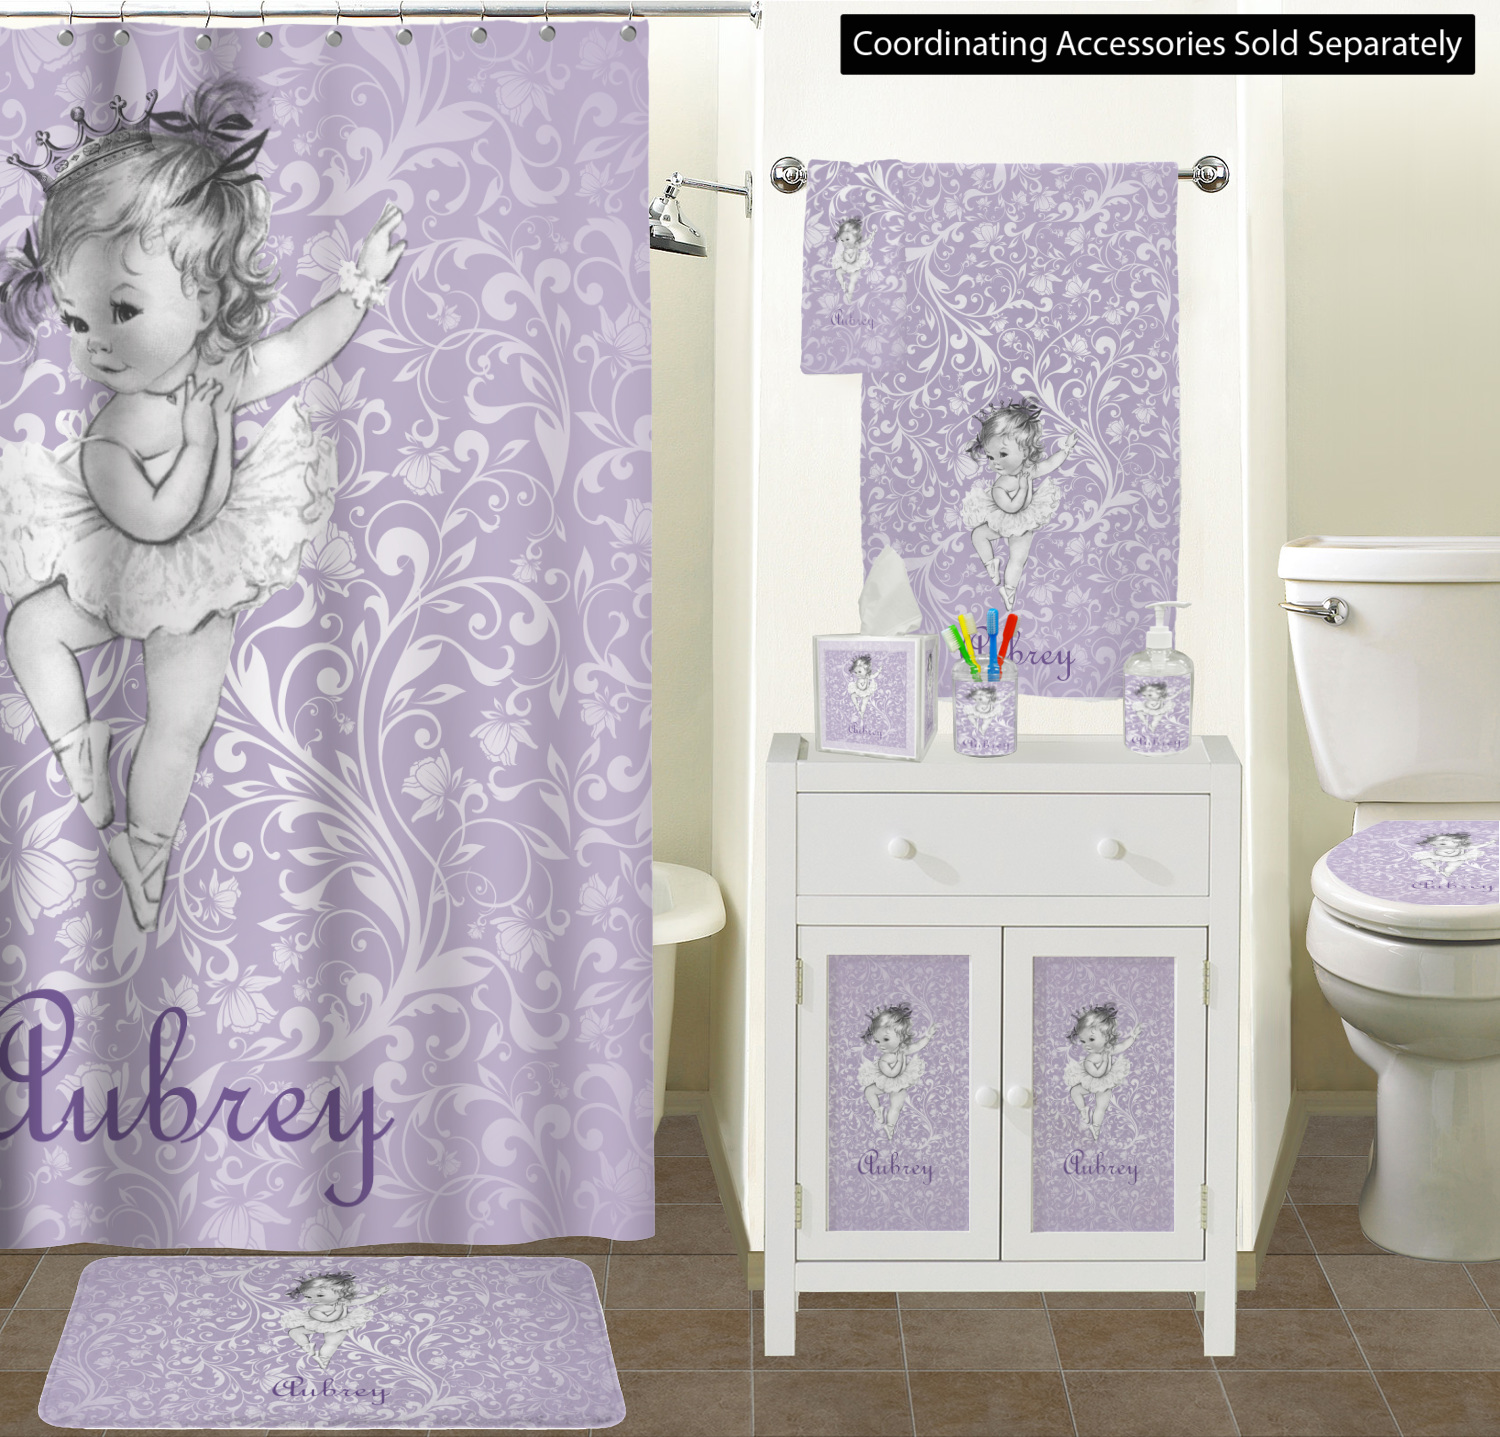 Ballerina Bathroom Accessories Set (Personalized) - YouCustomizeIt